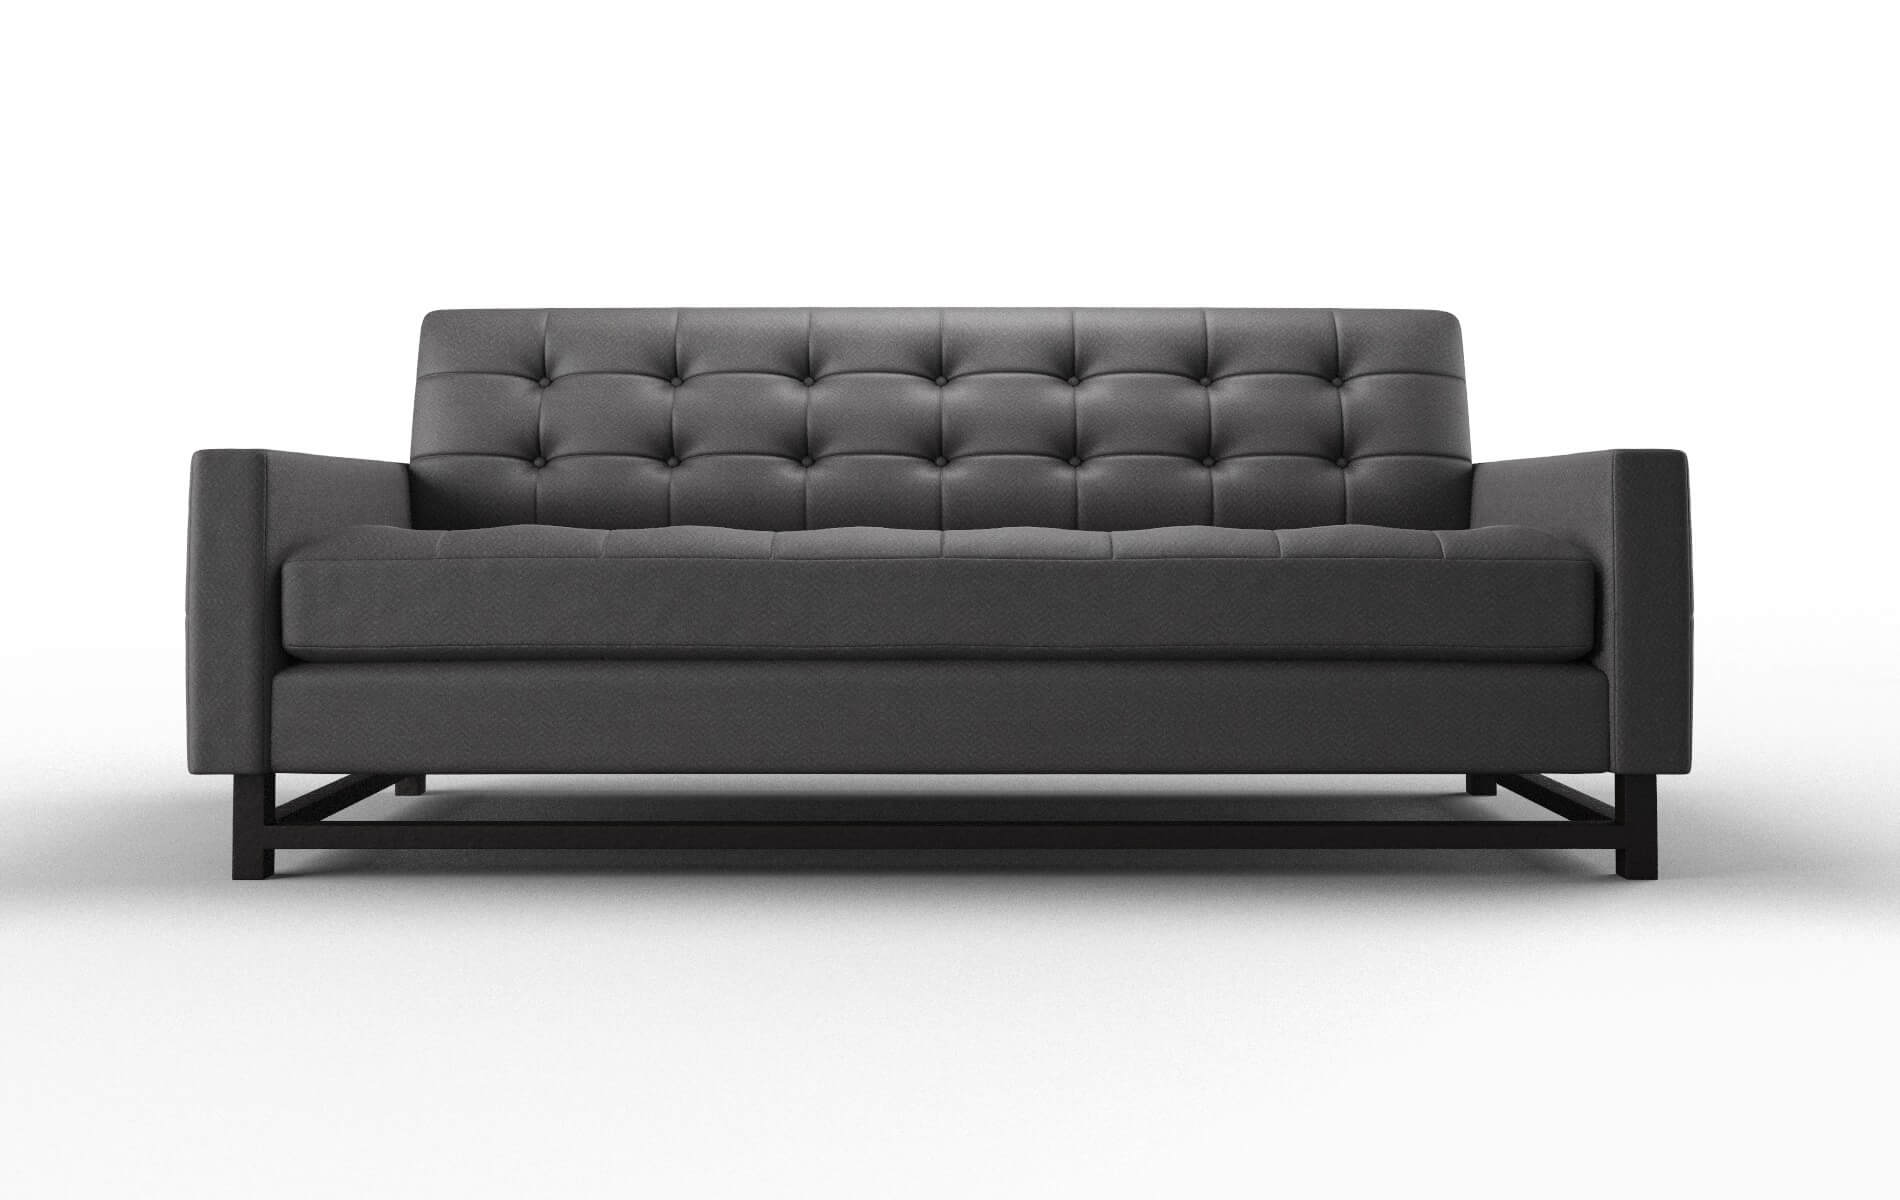 Madrid Catalina Charcoal Sofa espresso legs 1